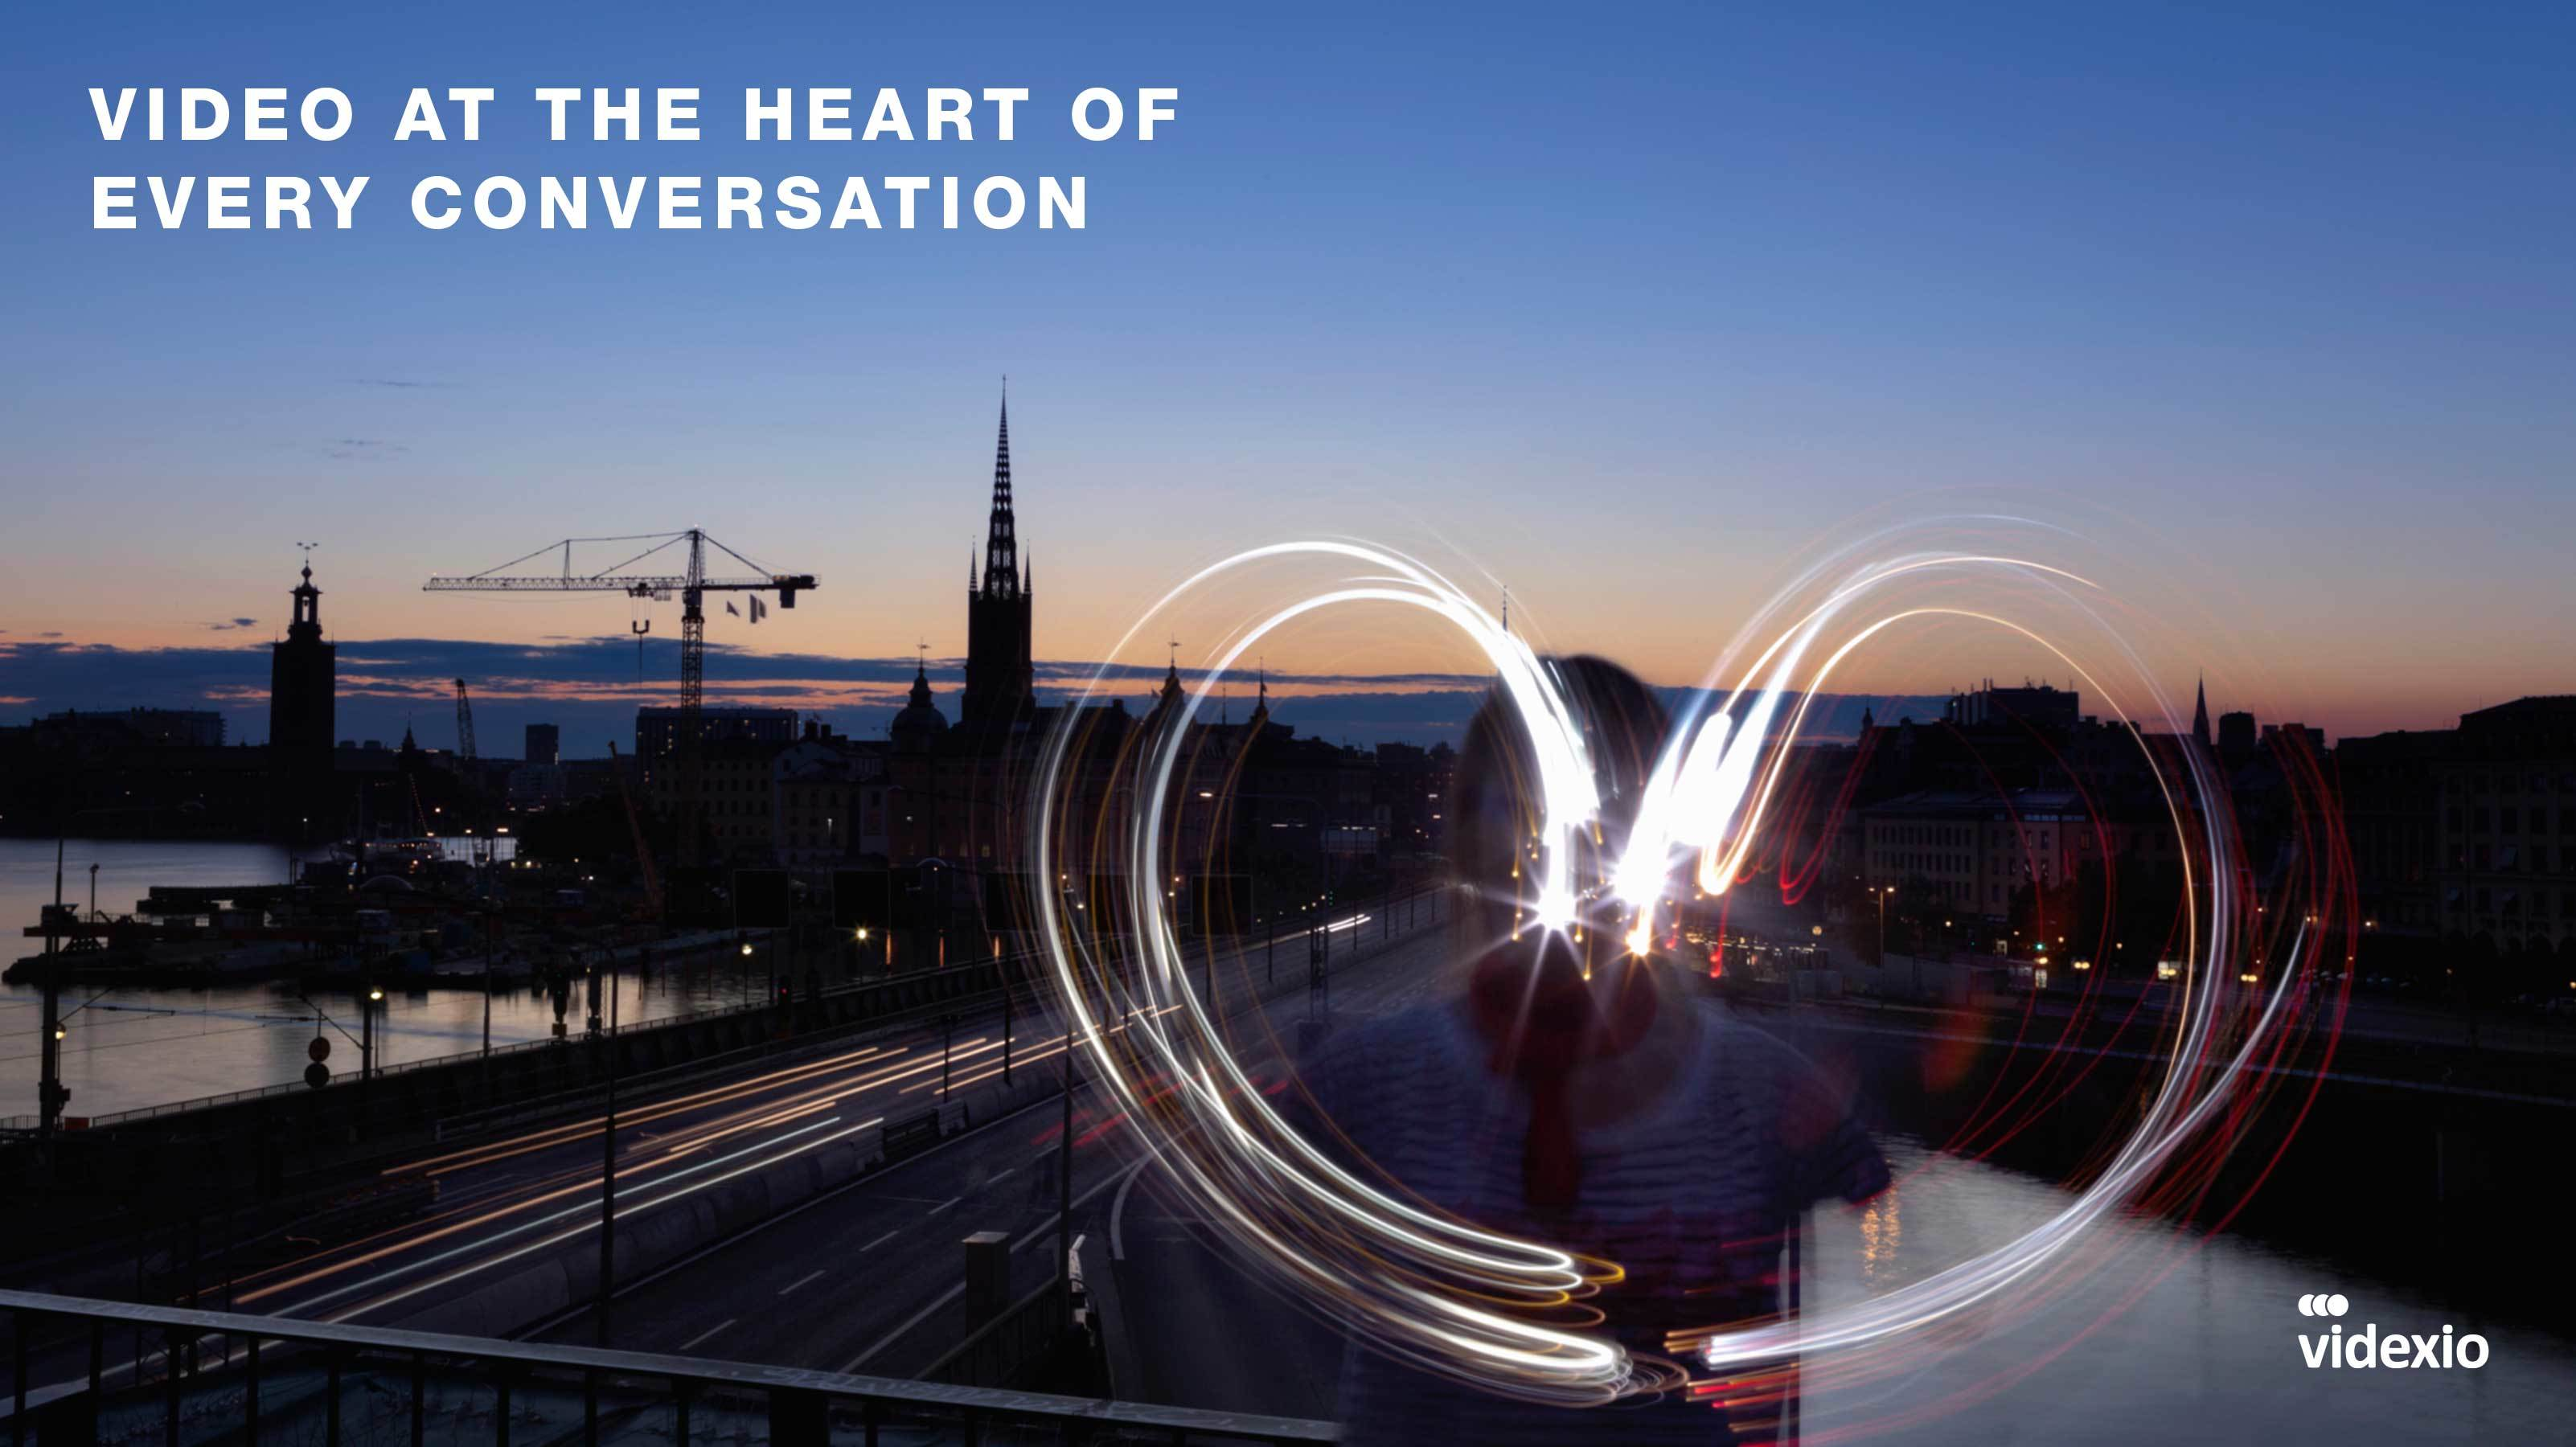 Video at the heart of every conversation Videxio